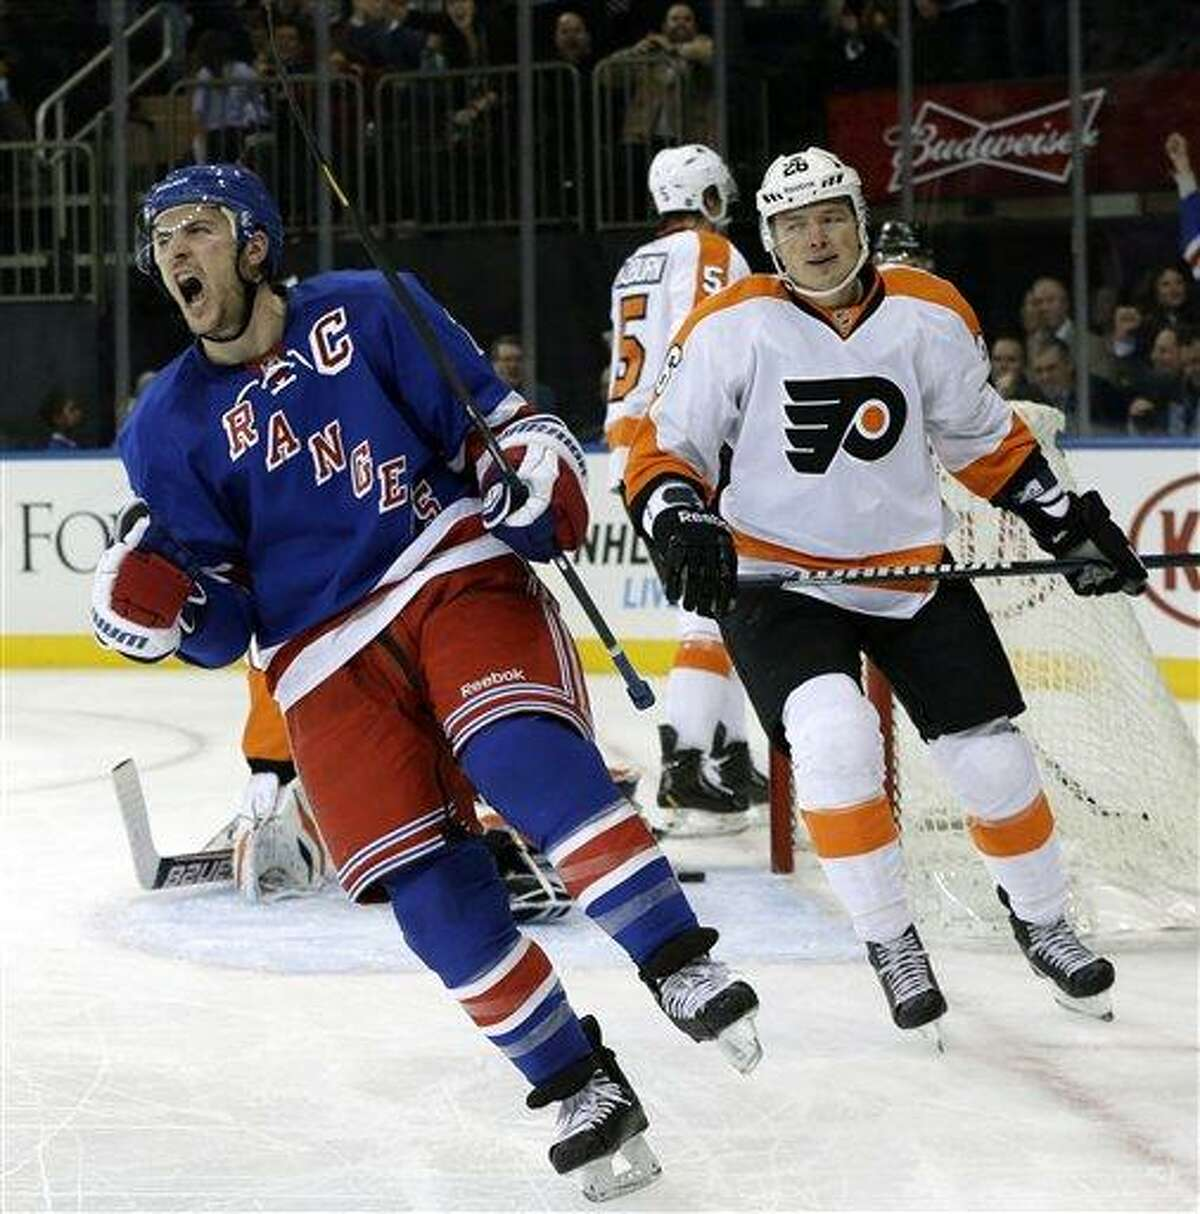 Philadelphia Flyers left wing Ruslan Fedotenko (26), of Ukraine, watches as New York Rangers right wing and captain Ryan Callahan (24) reacts after scoring a goal in the second period of their NHL hockey game at Madison Square Garden in New York, Tuesday, Jan. 29, 2013. (AP Photo/Kathy Willens)